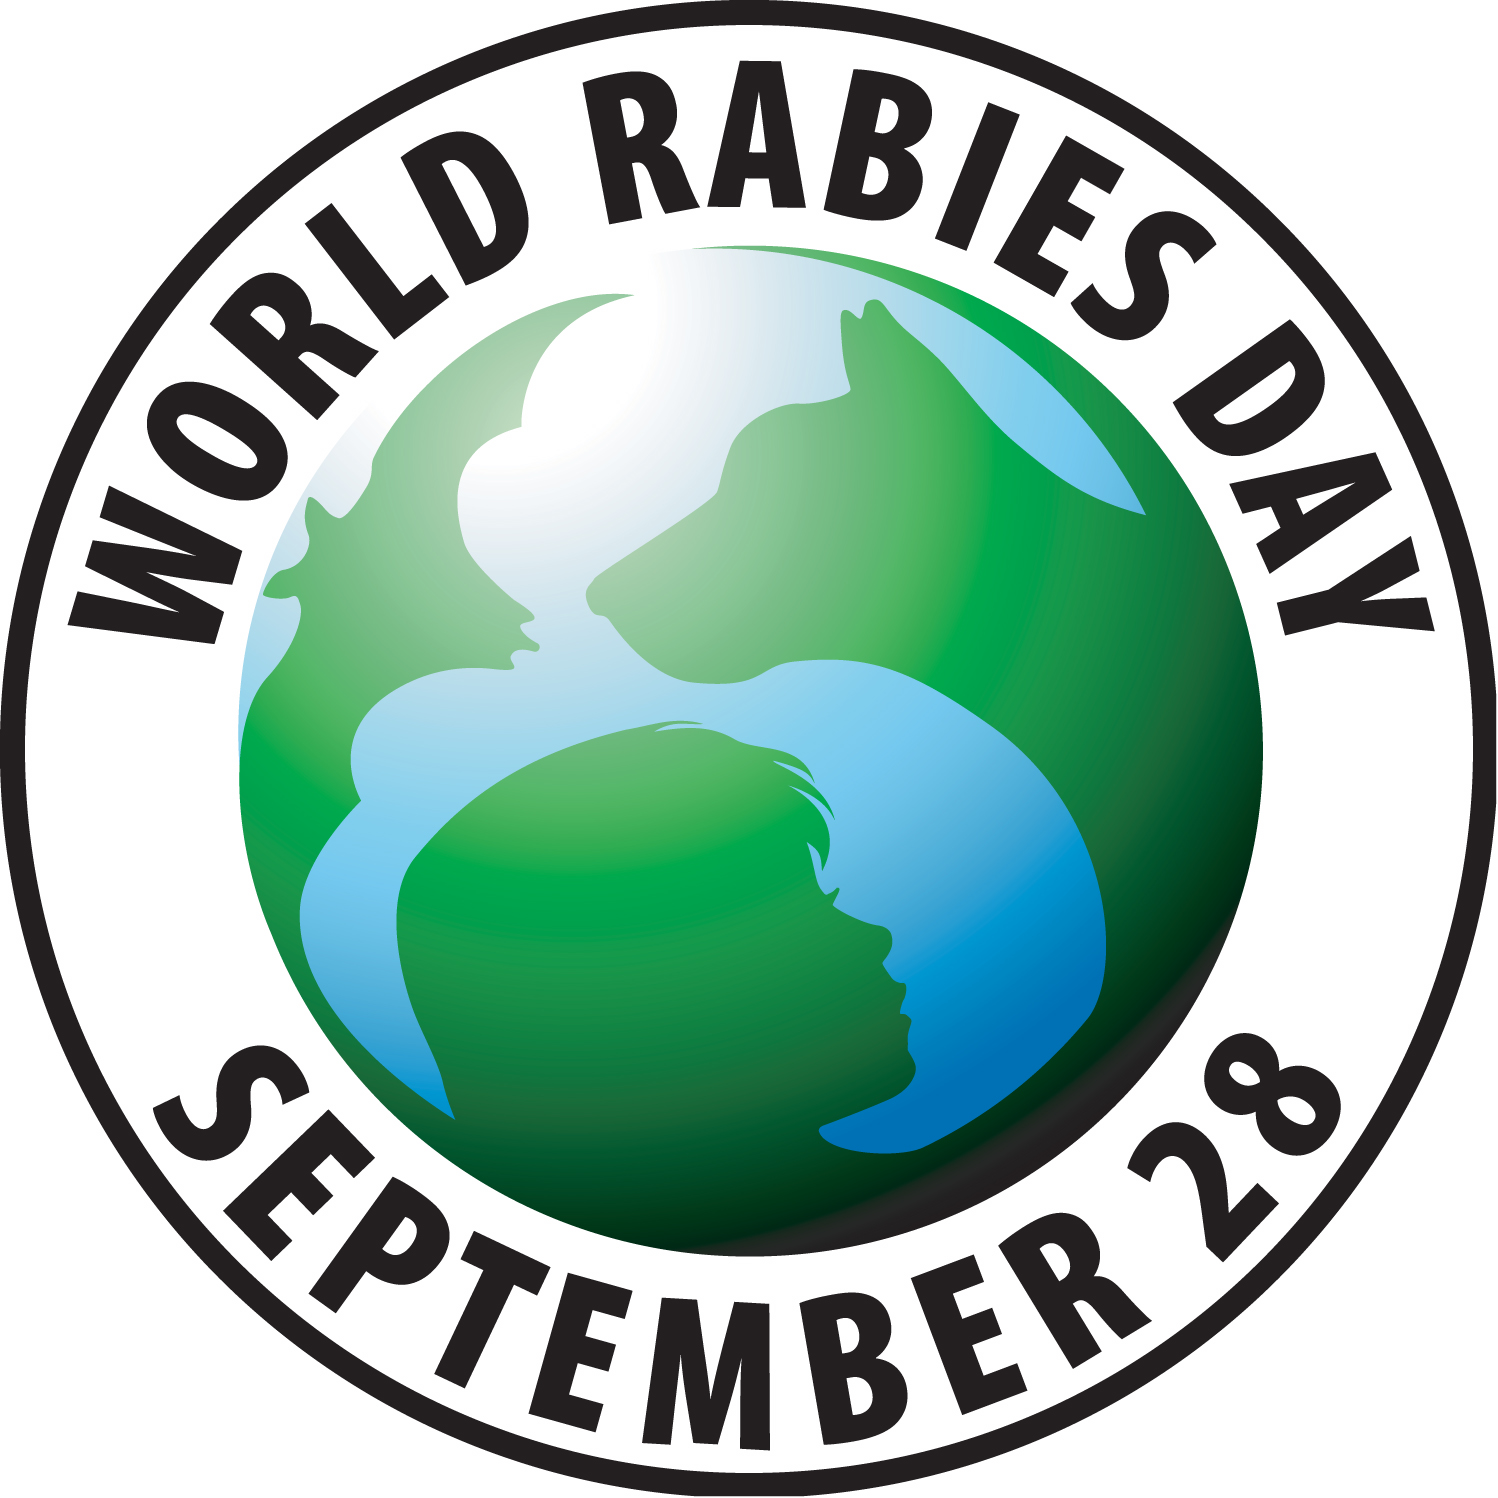 Ban On Plastic Bags Begins In in addition Ruin Stn 18 also Toby And Toby Elizabeth's Record Reign as well World Rabies Day 2012 also Semester2. on live stream radio or listen